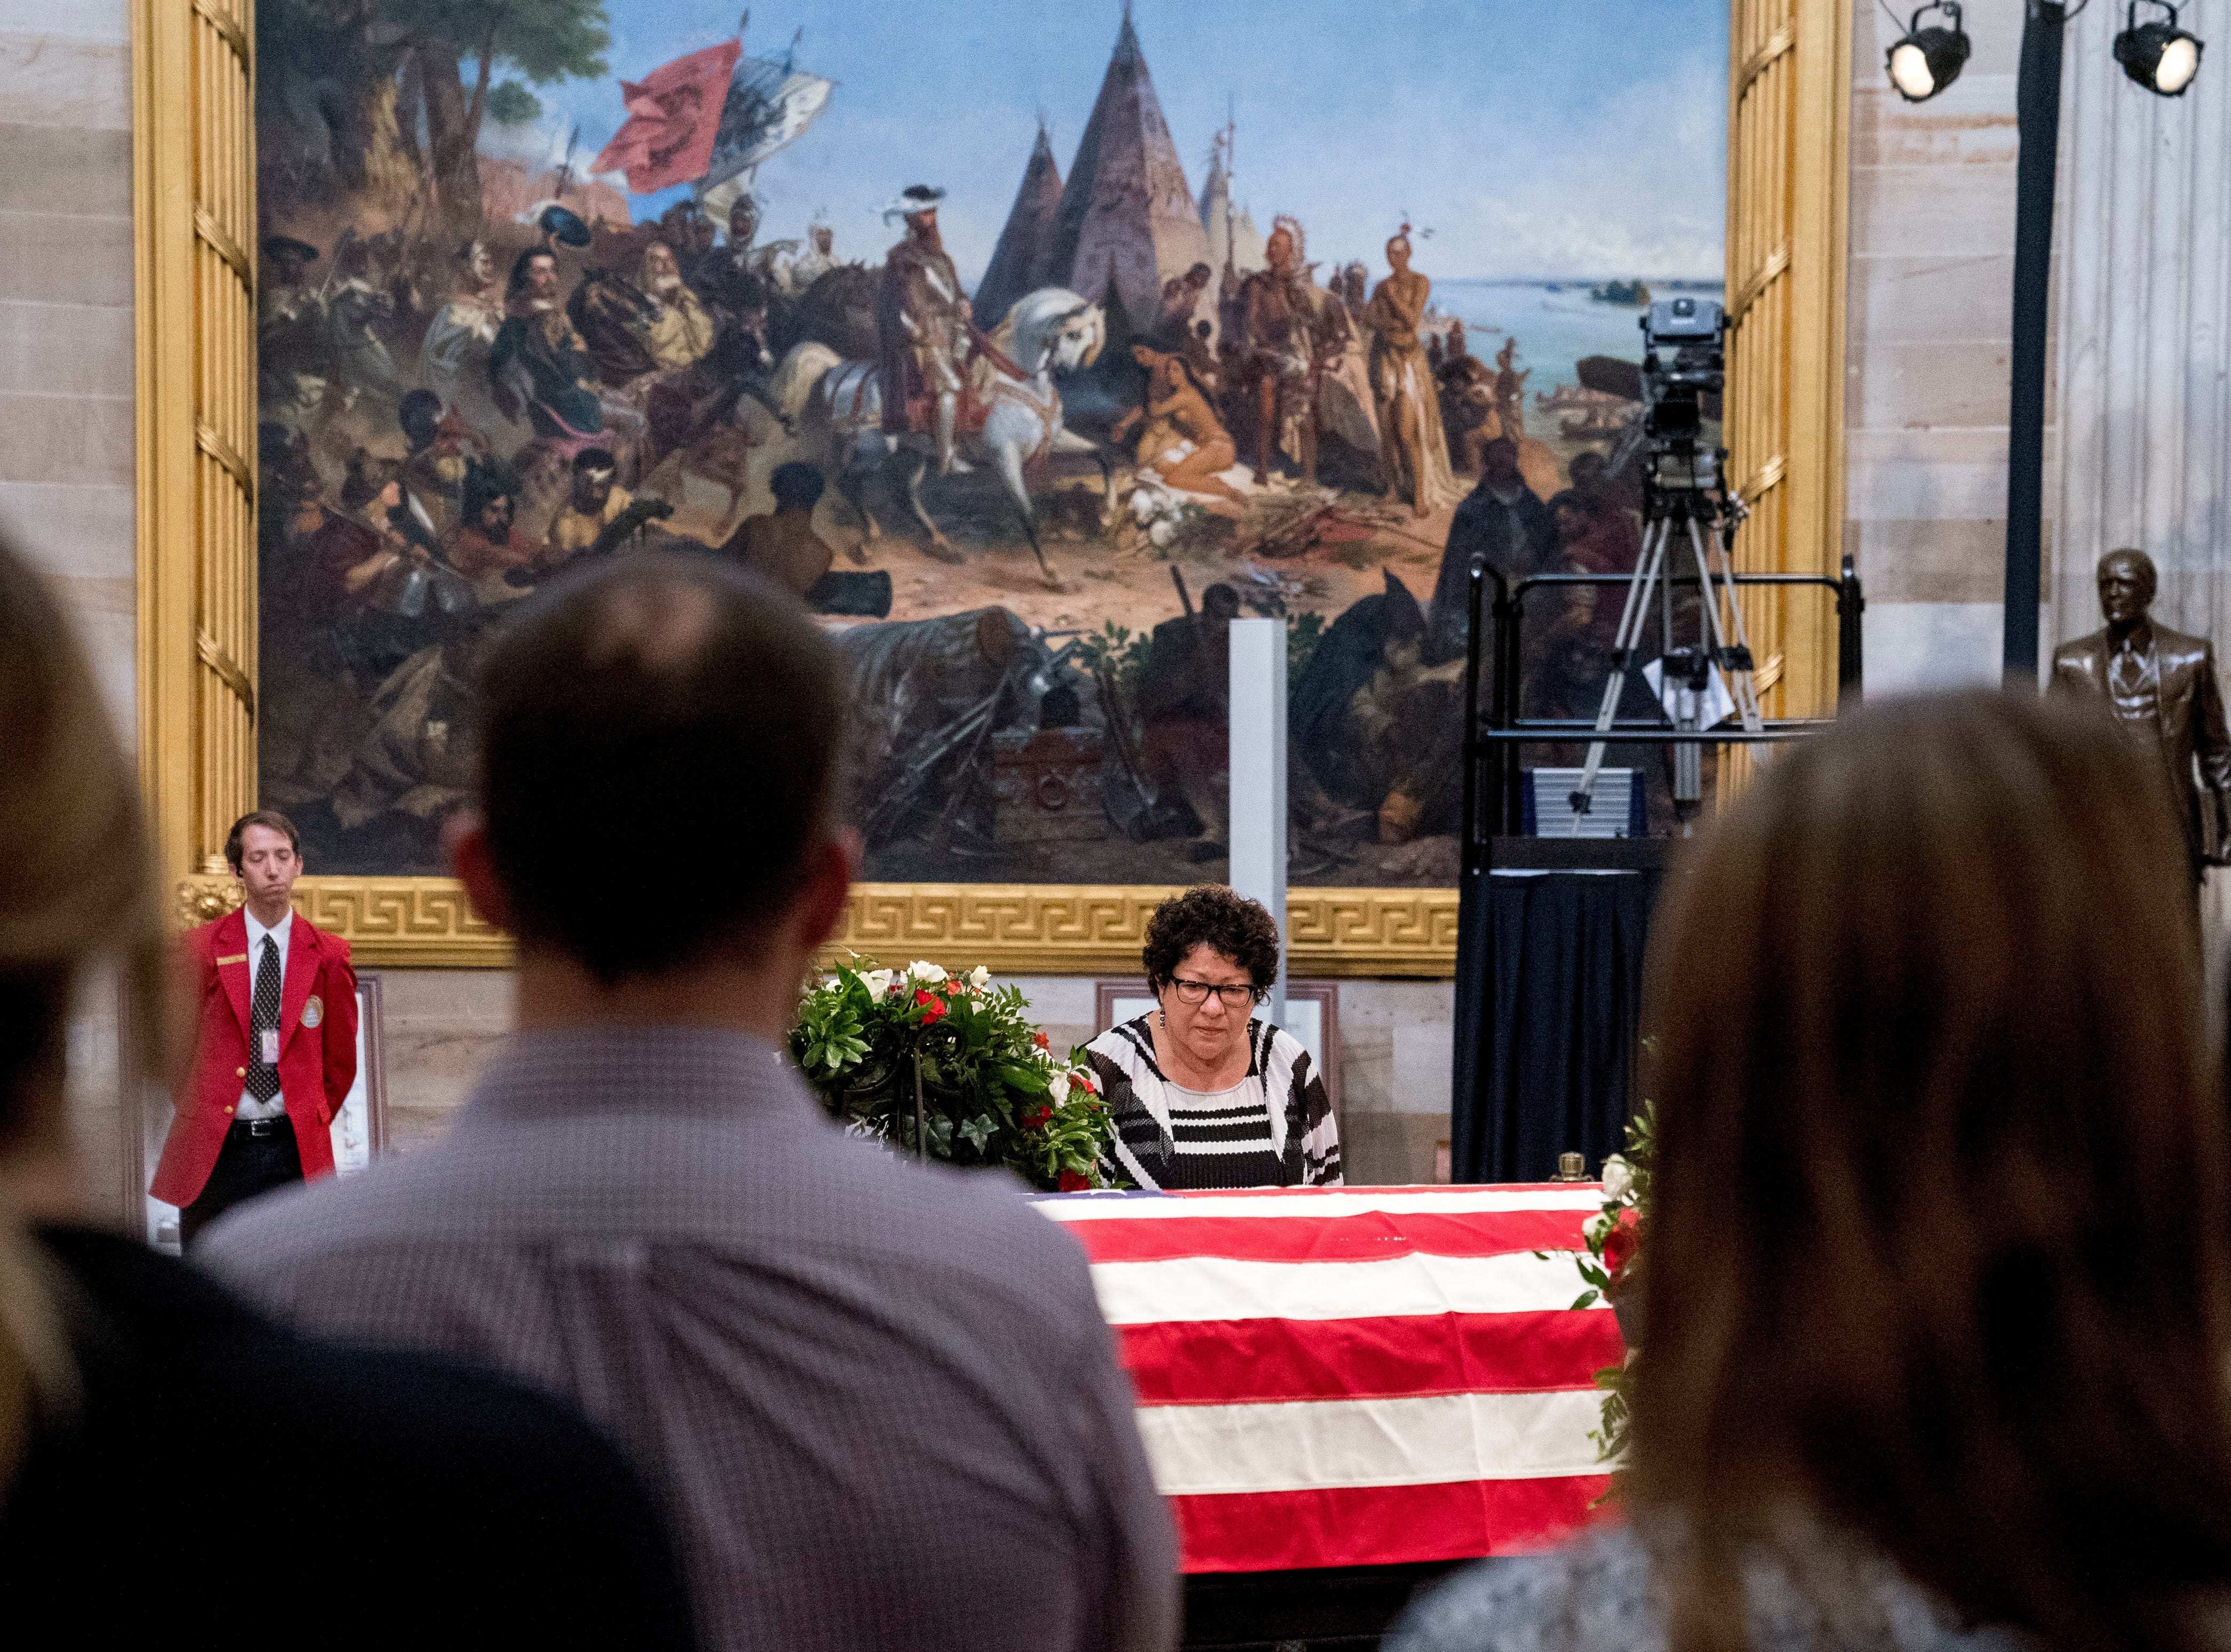 Members of the public watch as Supreme Court Justice Sonia Sotomayor stands over the casket of Sen. John McCain, R-Ariz., as he lies in state in the Rotunda of the U.S. Capitol, Friday, Aug. 31, 2018, in Washington. (AP Photo/Andrew Harnik)